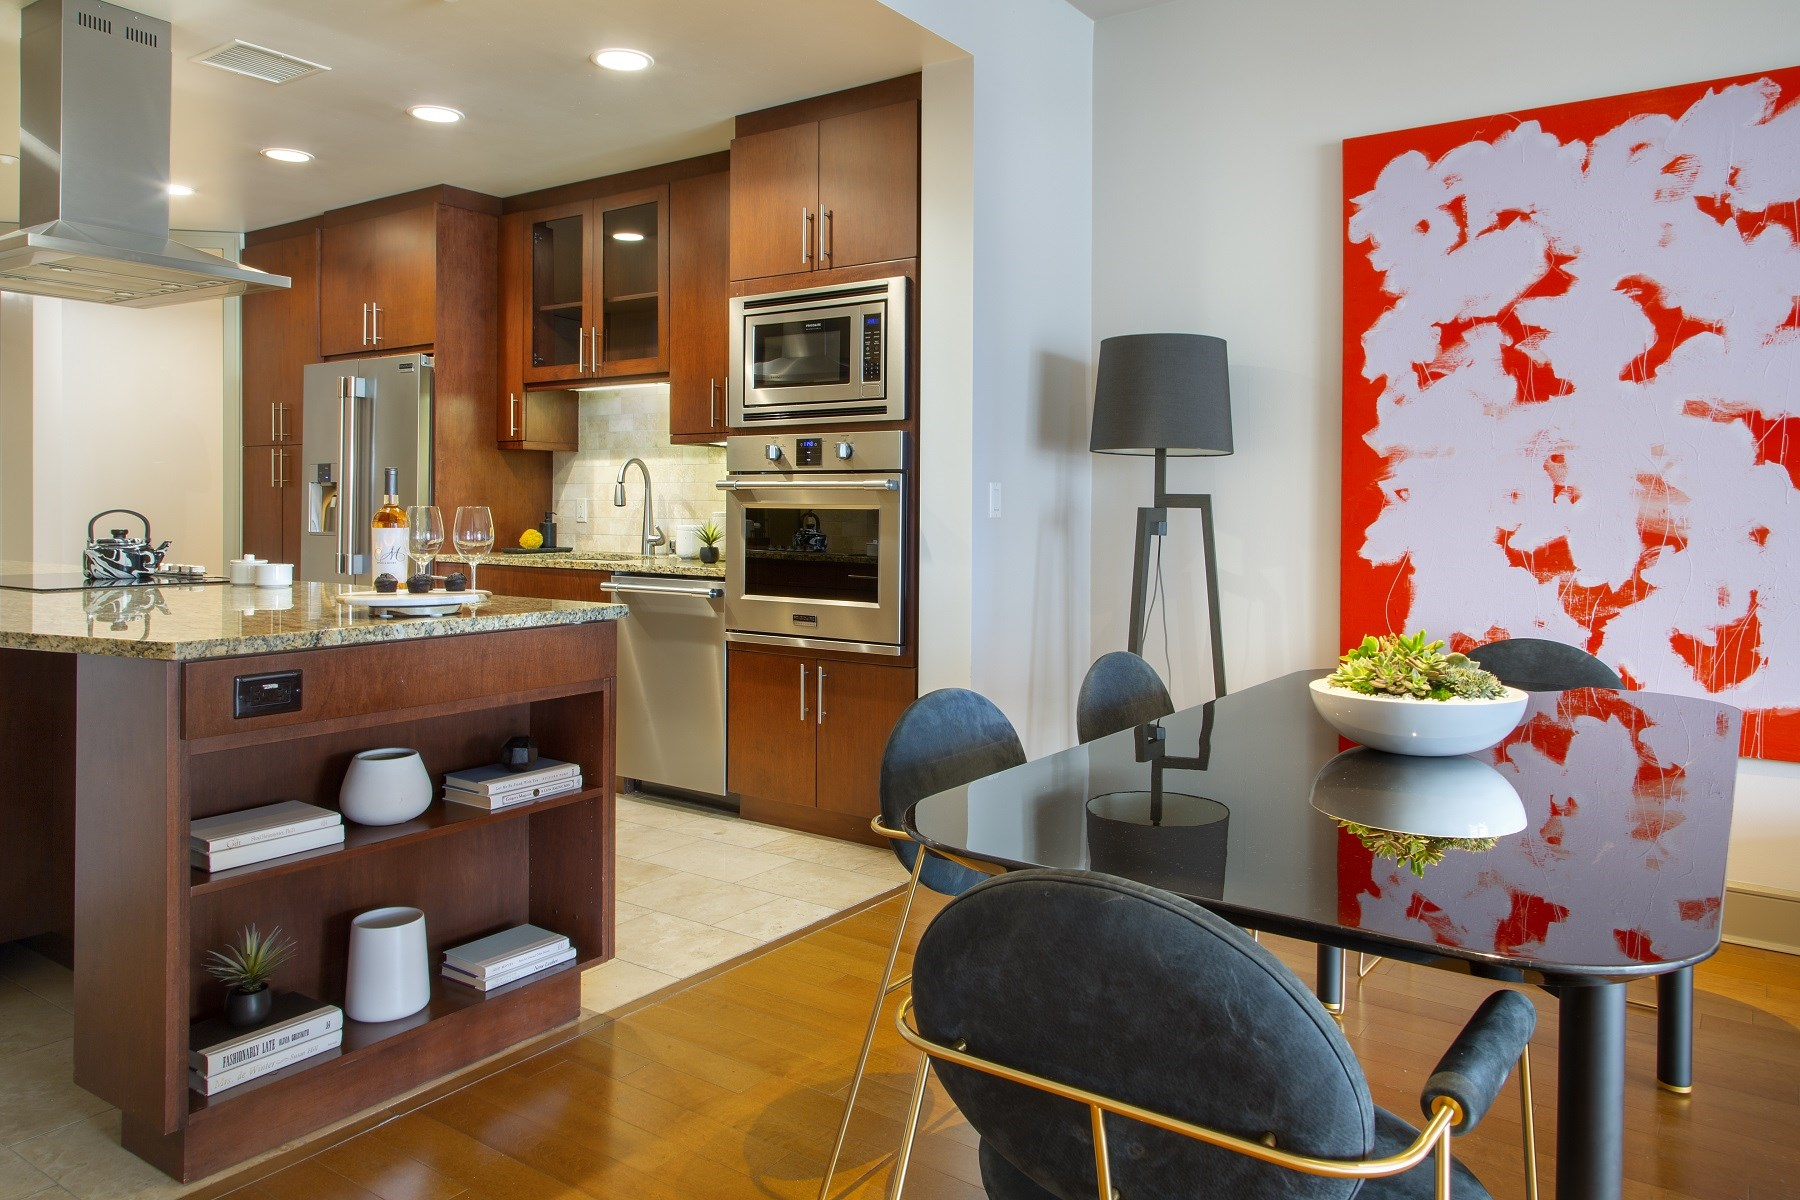 Westwood-Luxury-Apartments-Wilshire-Victoria-Unit-401-Kitchen-And-Living-Area